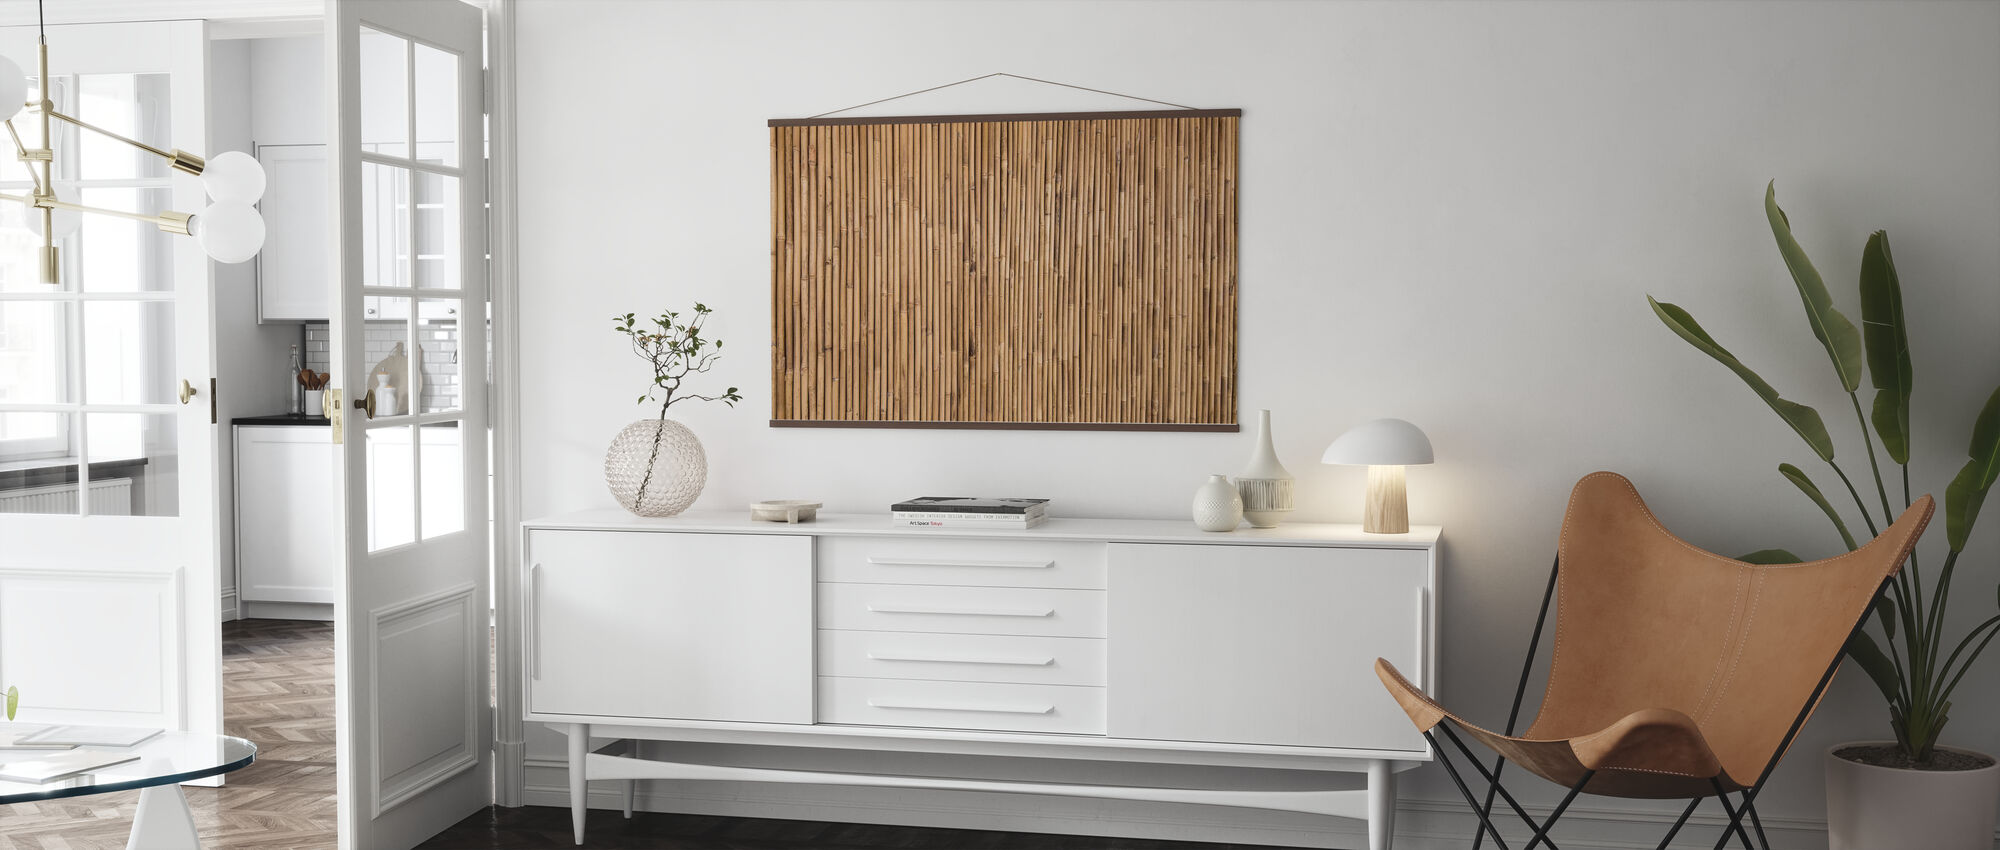 Bamboo Texture - Poster - Living Room